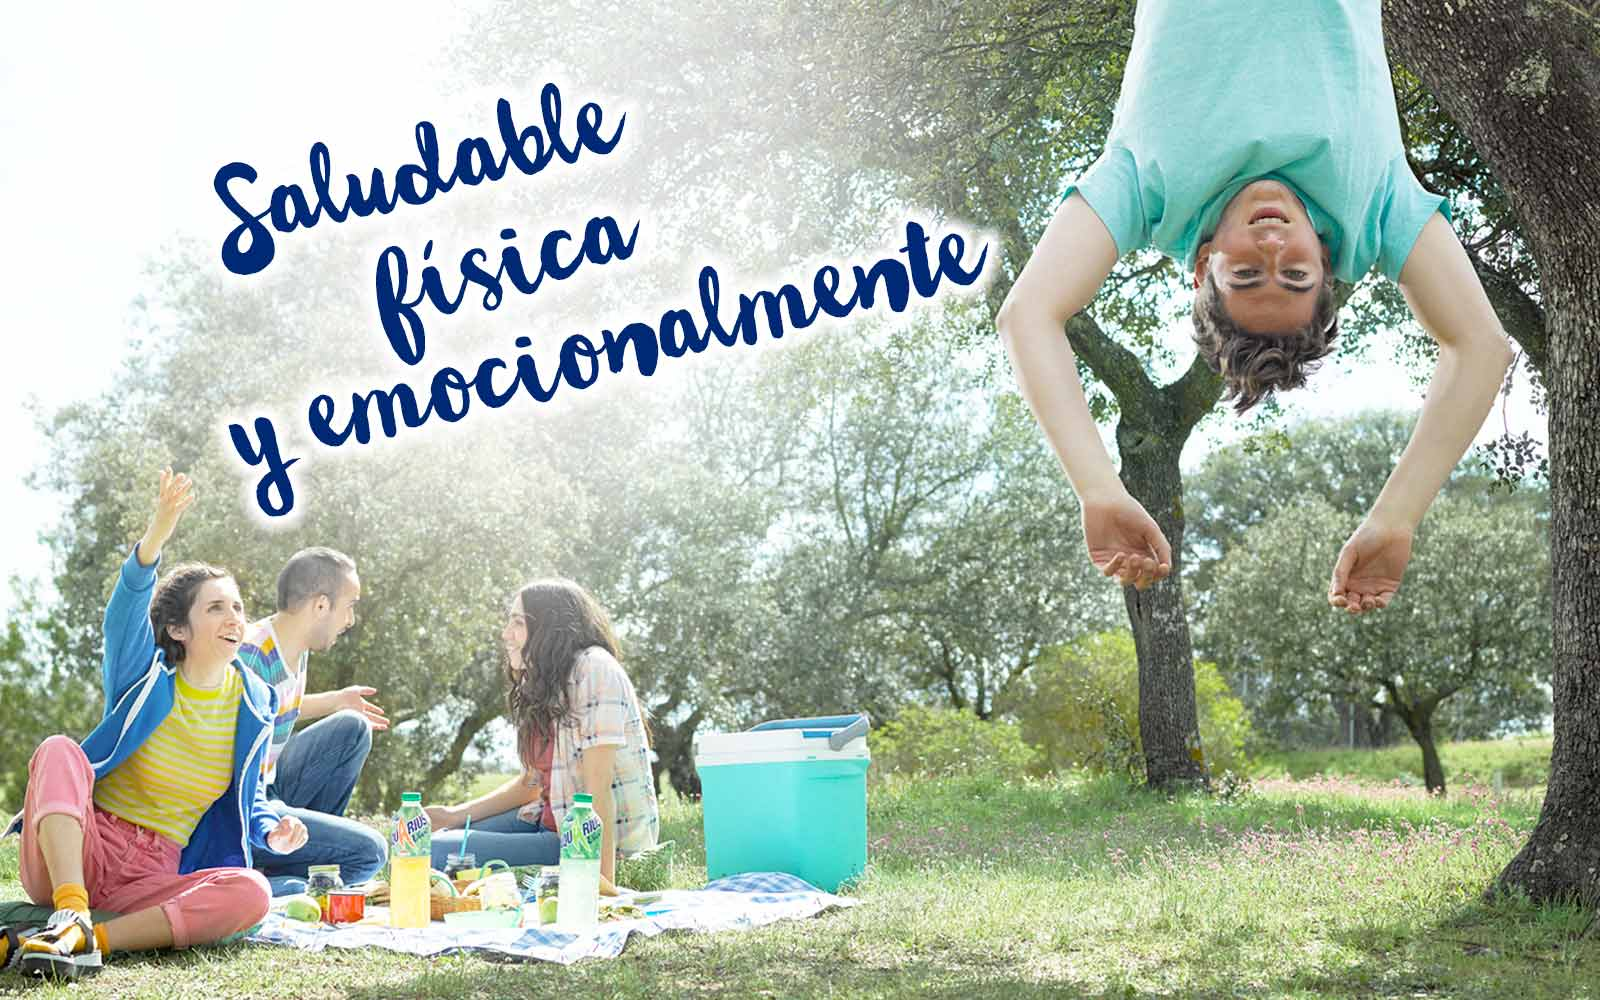 This image was used in the Aquarius Vive advertising campaign by The Coca-Cola Company. It features friends enjoying Aquarius Vive outside at a picnic and a man hanging upside down from a tree.